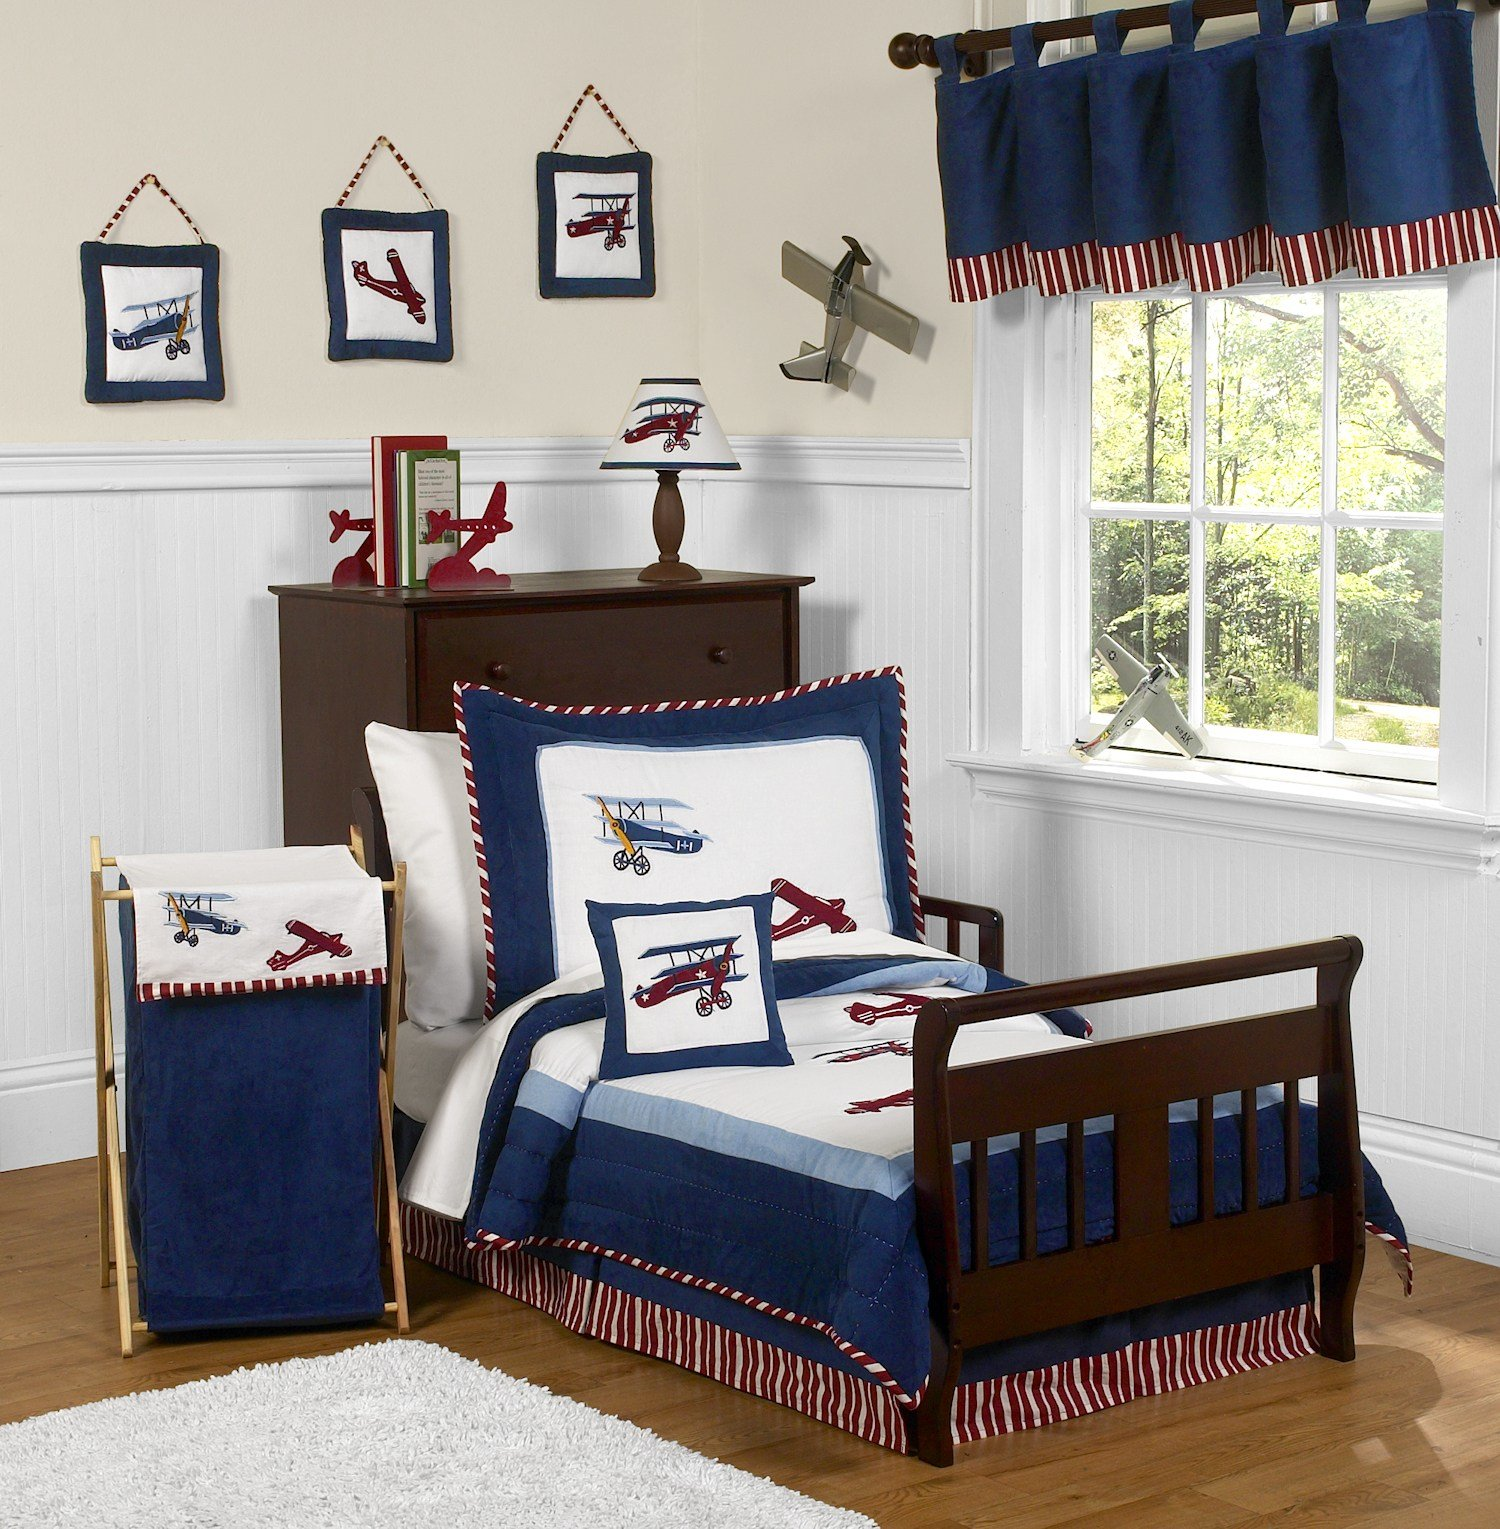 Best Vintage Airplanes Toddler Boy Comforter Bedding 5Pc Bed In With Pictures